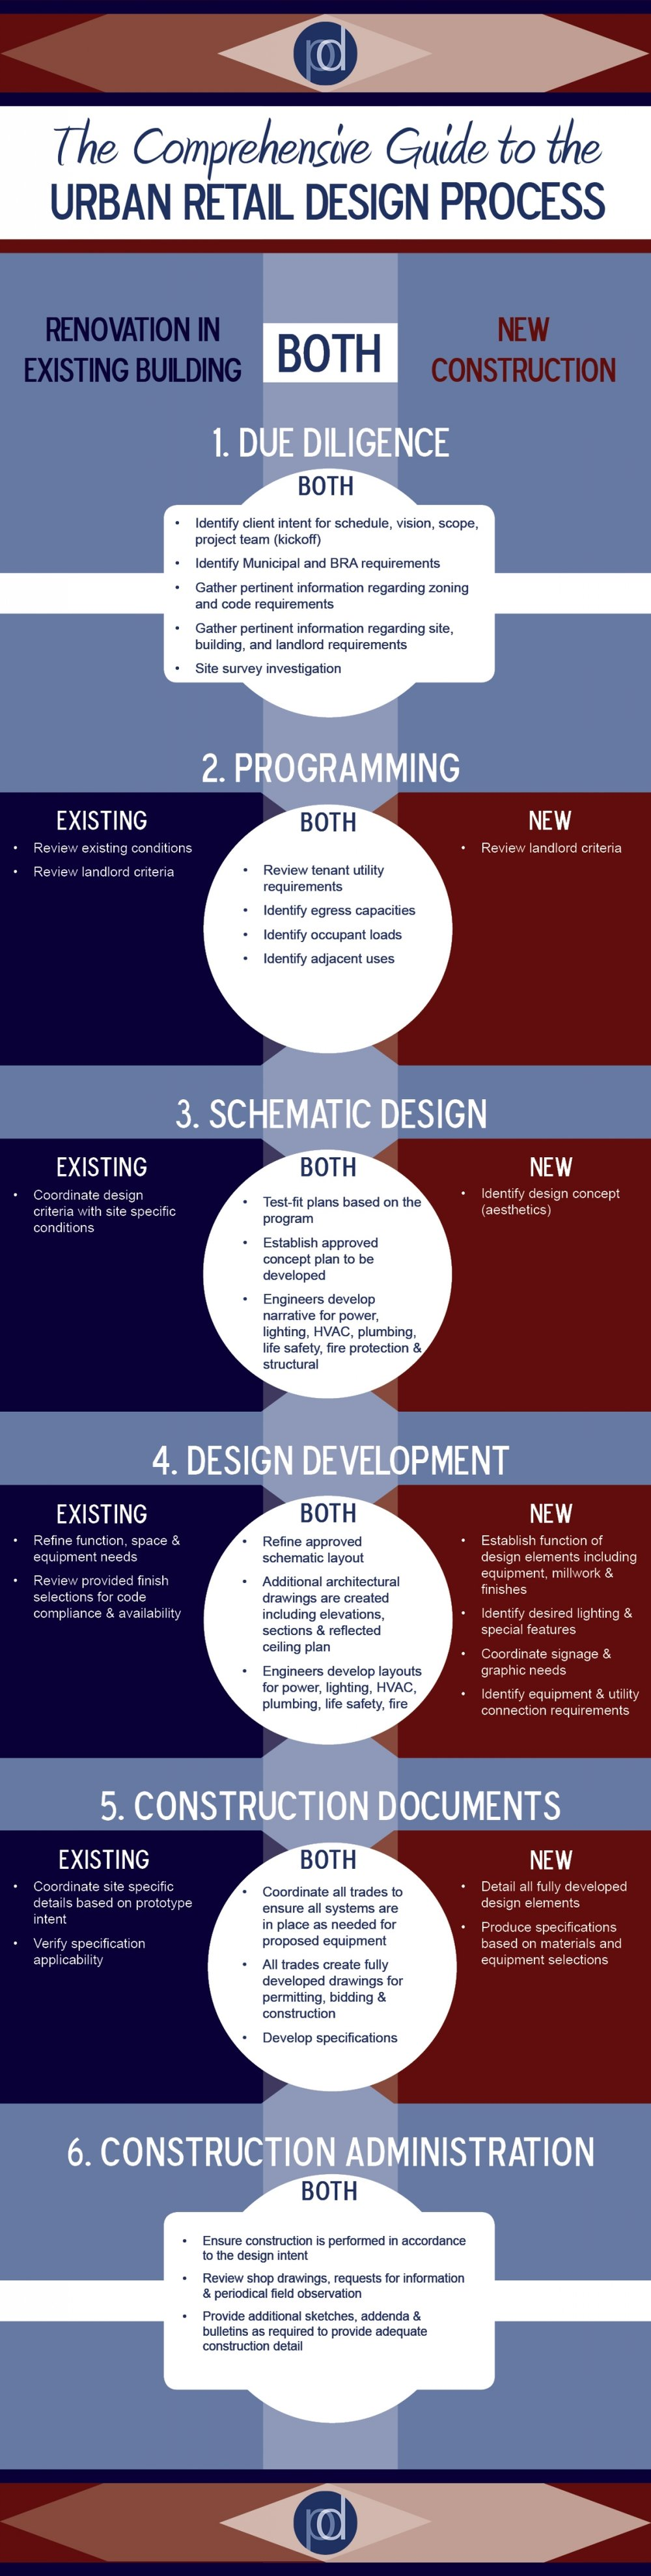 Comprehensive-Guide-Urban-Retail-Design-Process-Infographic_0.jpg